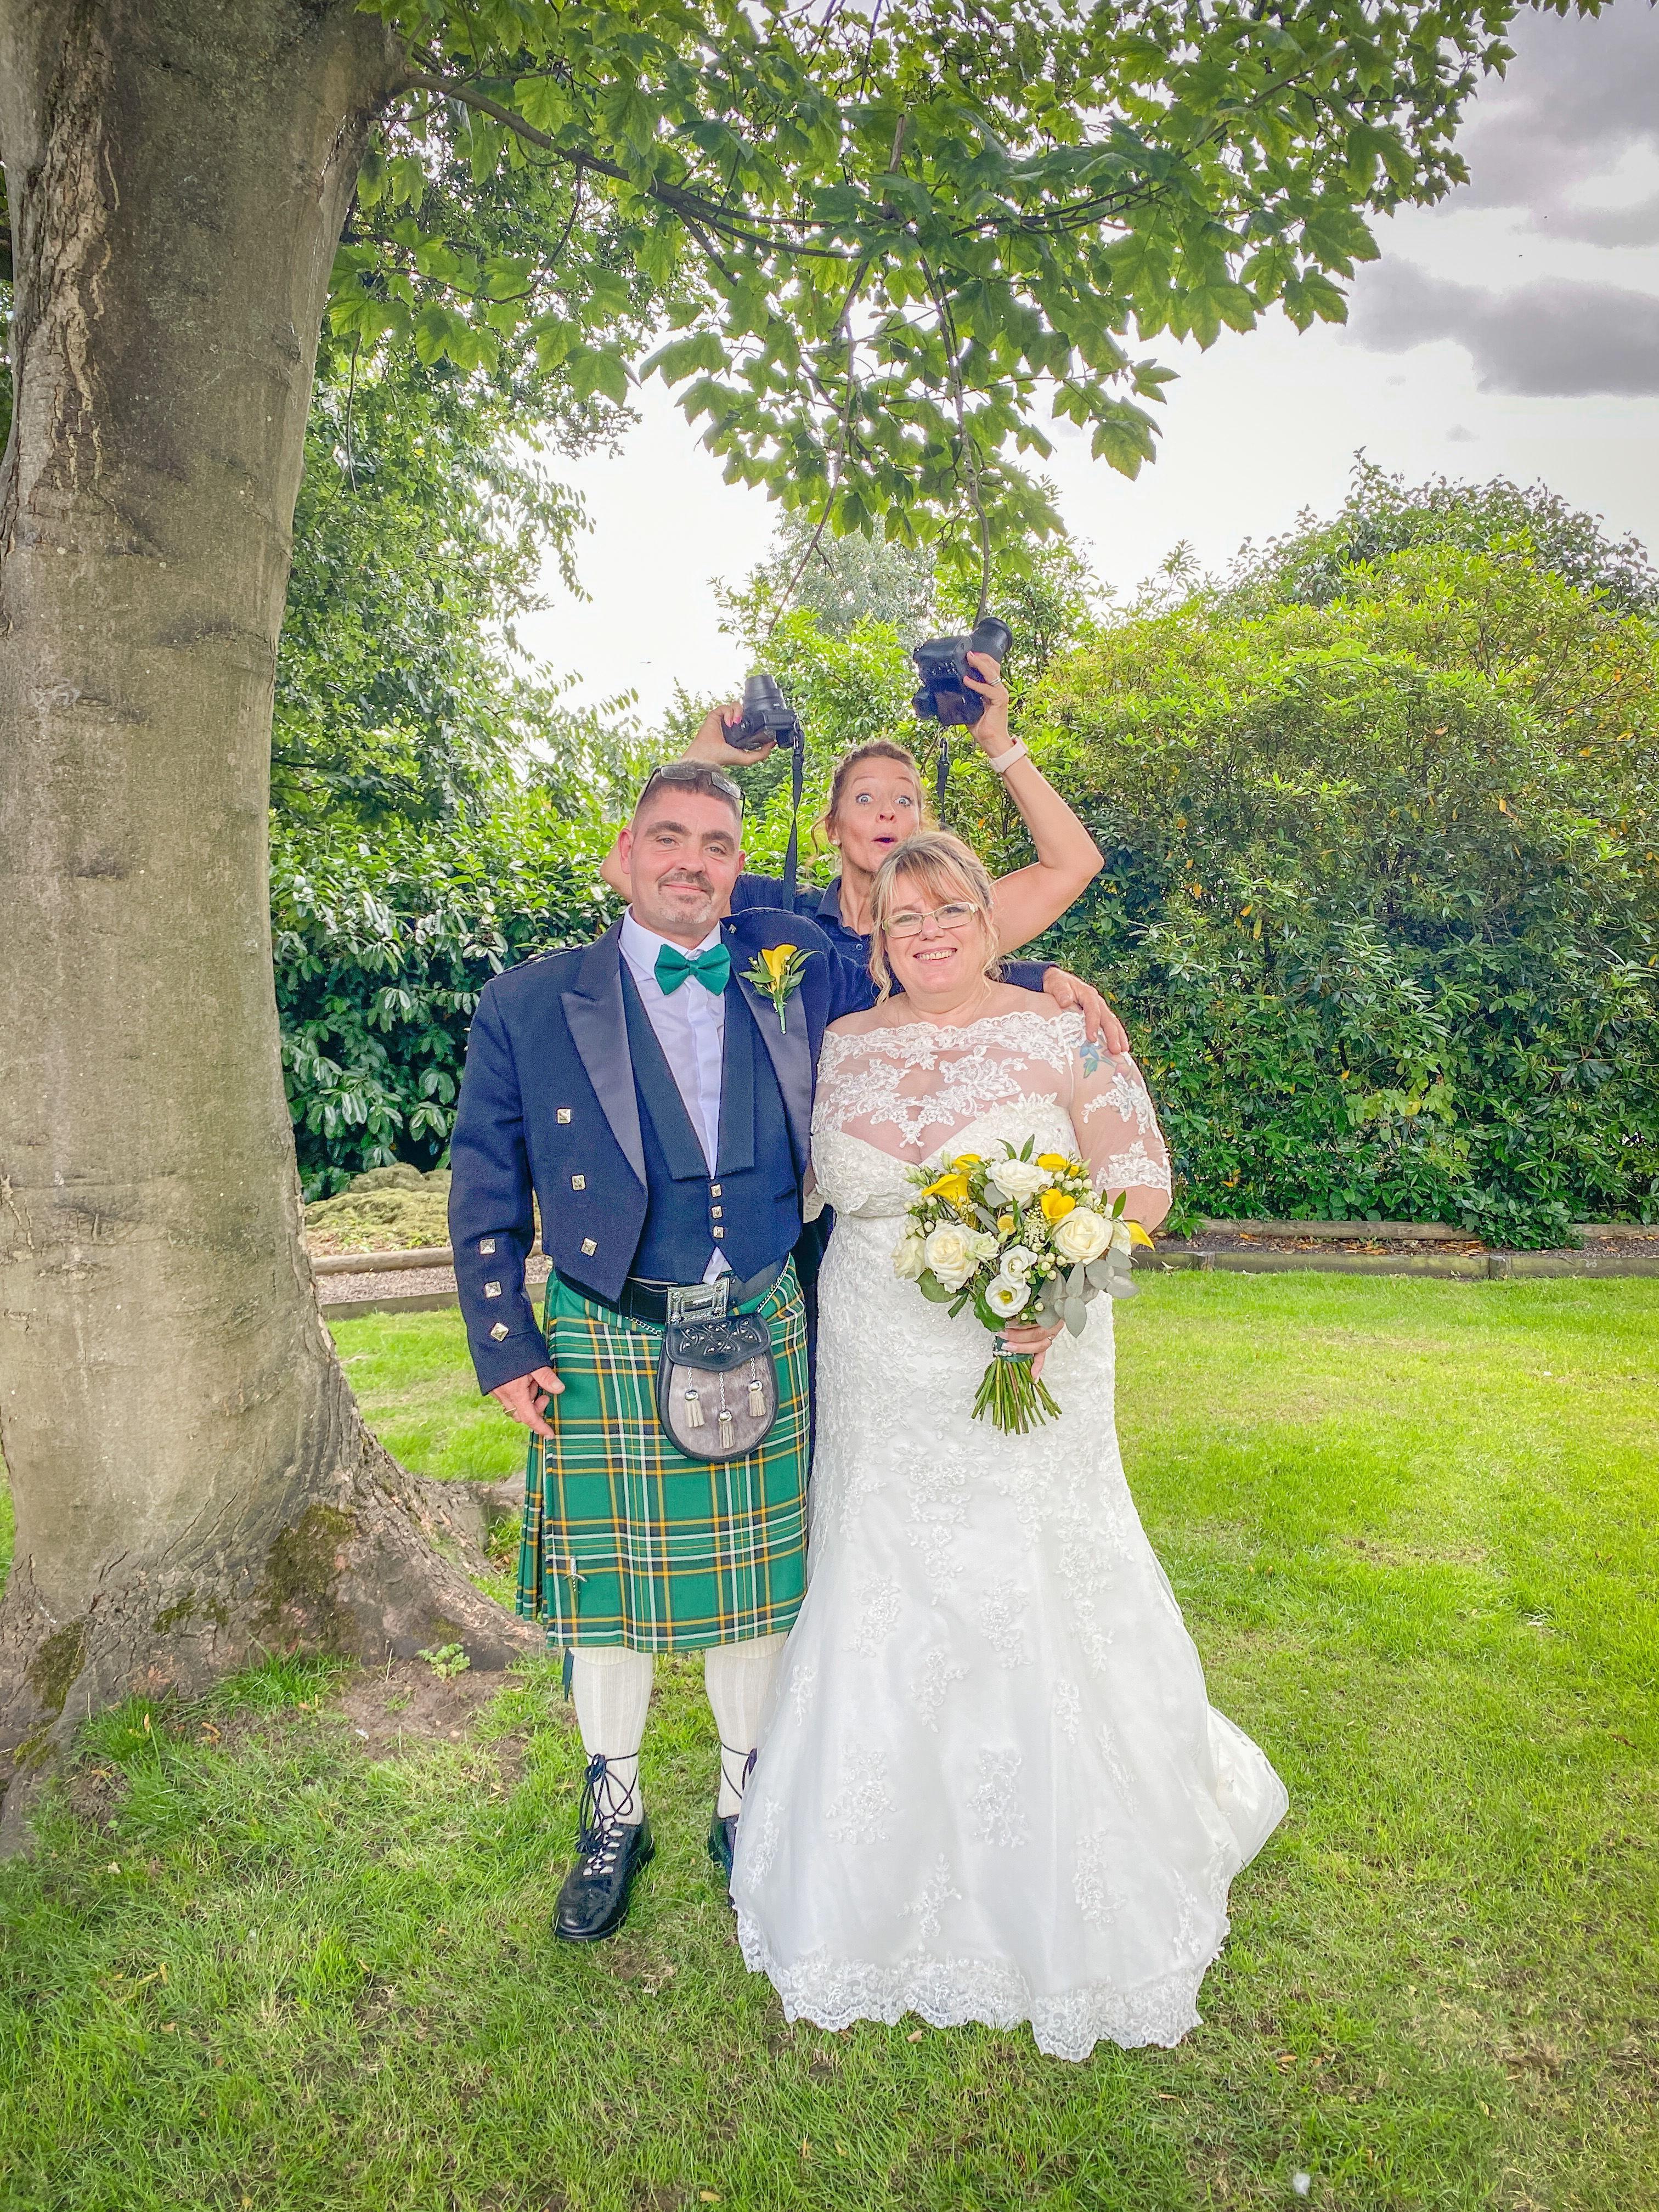 Me as photographer - McCreery Wedding by Pictoria - 15 August 2021 -329